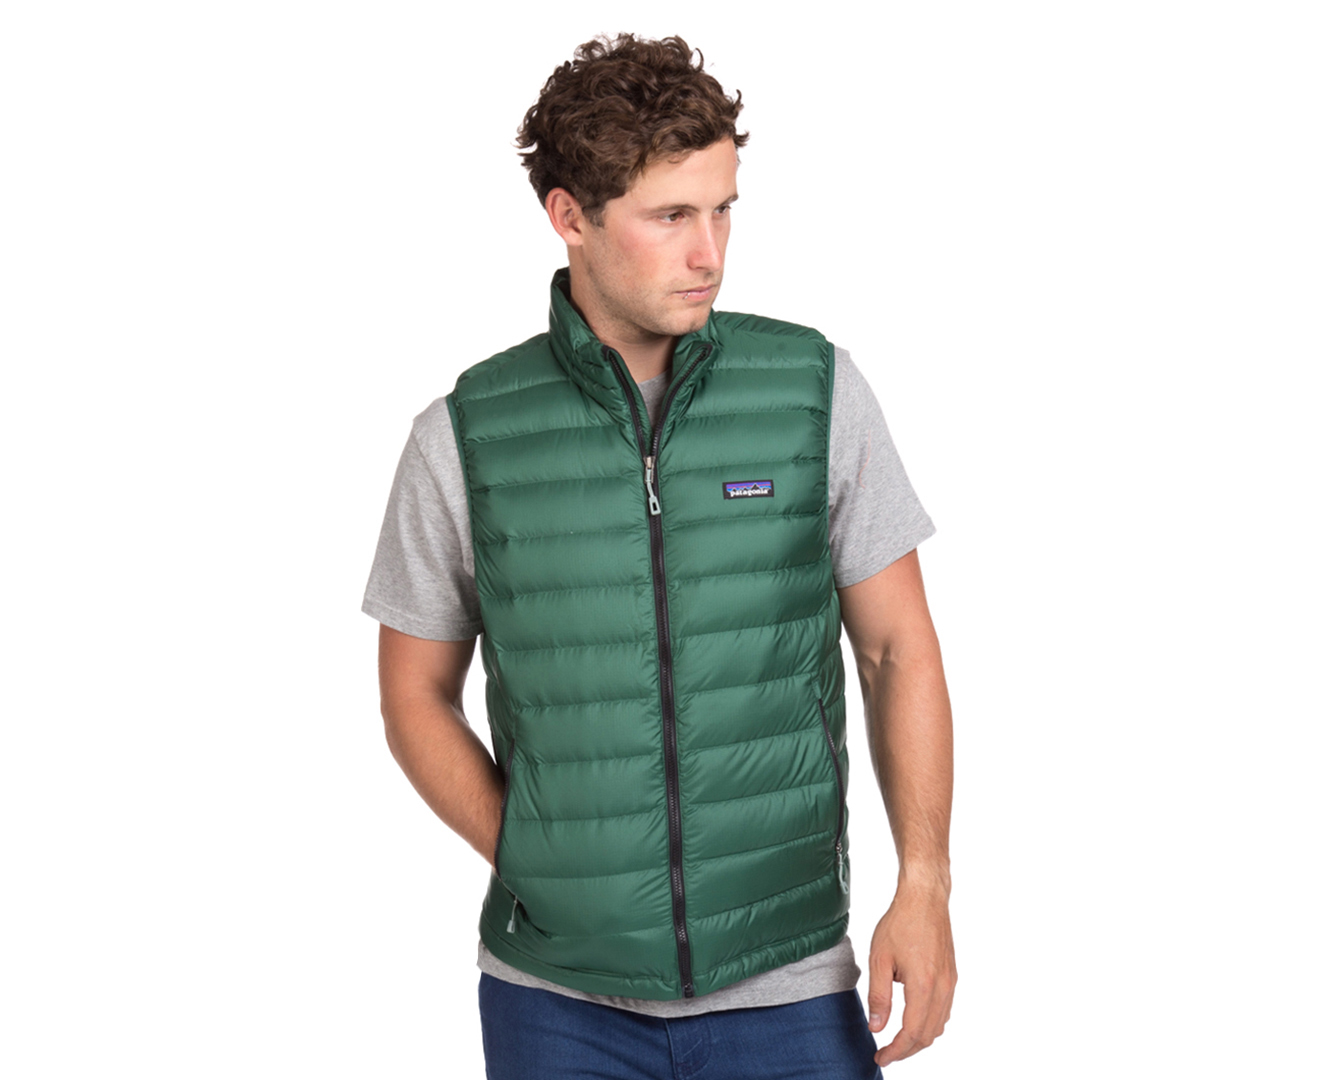 Patagonia Men's Down Sweater Vest - Malachite Green | Great daily ...